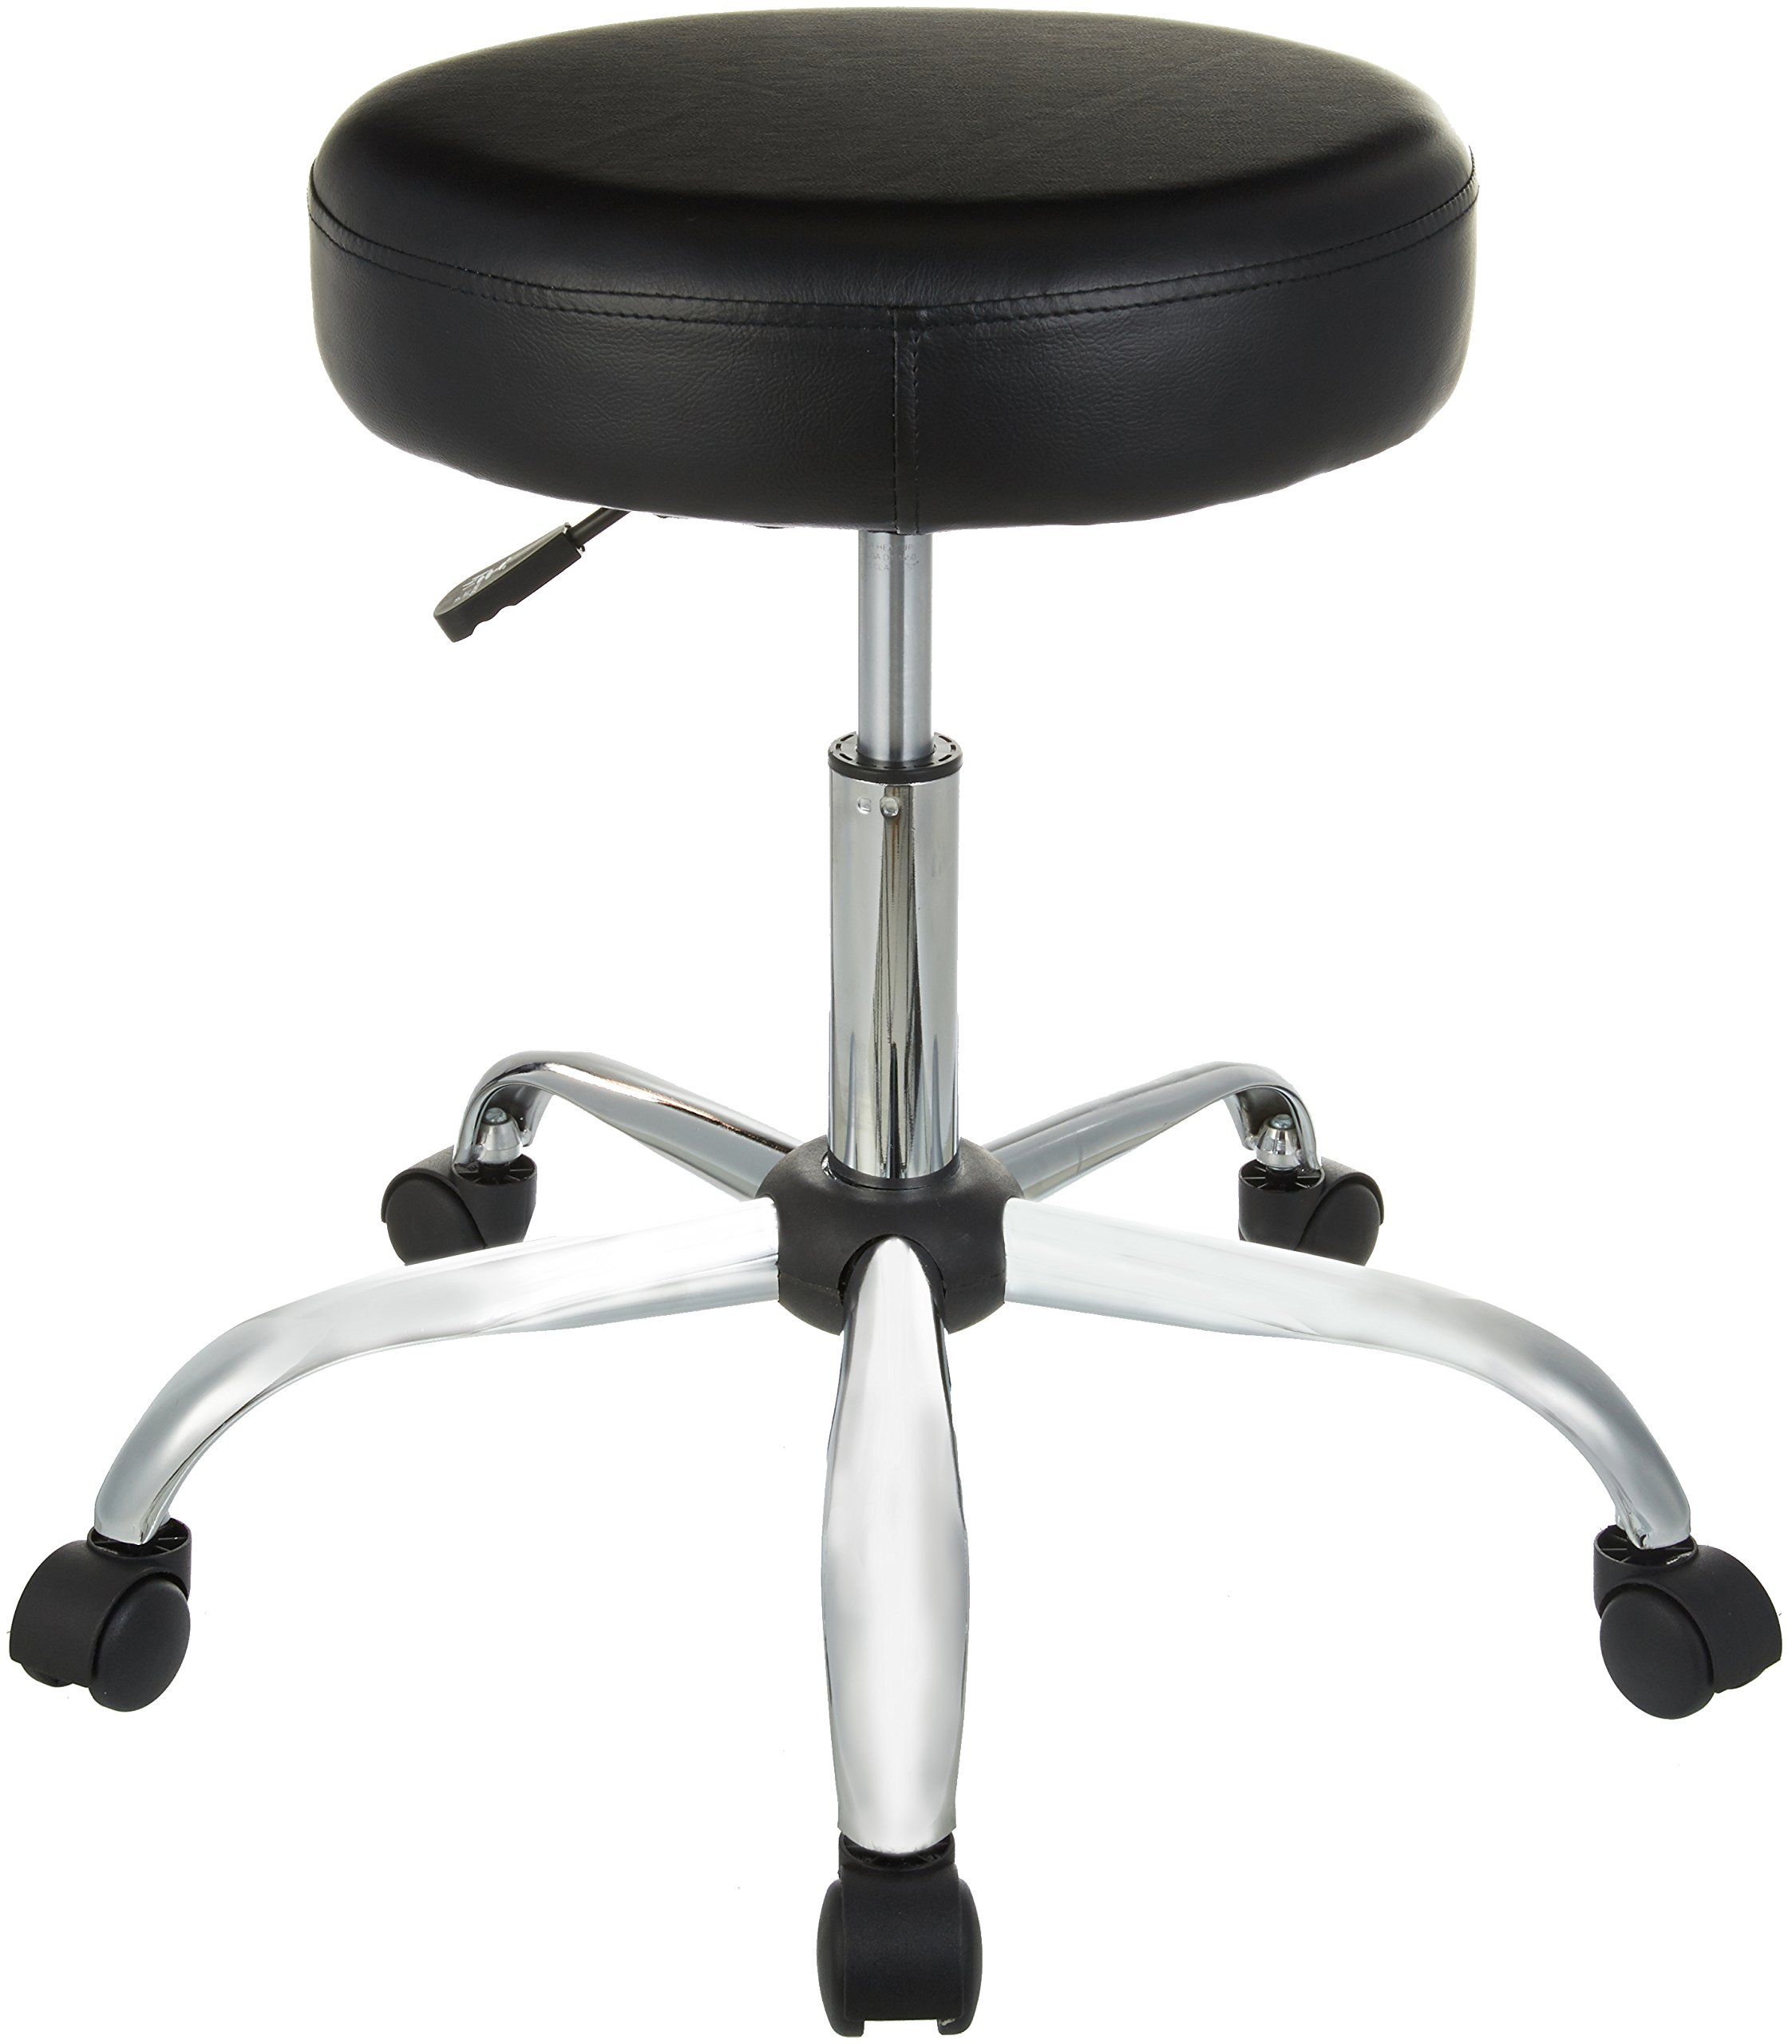 AmazonBasics Drafting Stool - Black by AmazonBasics